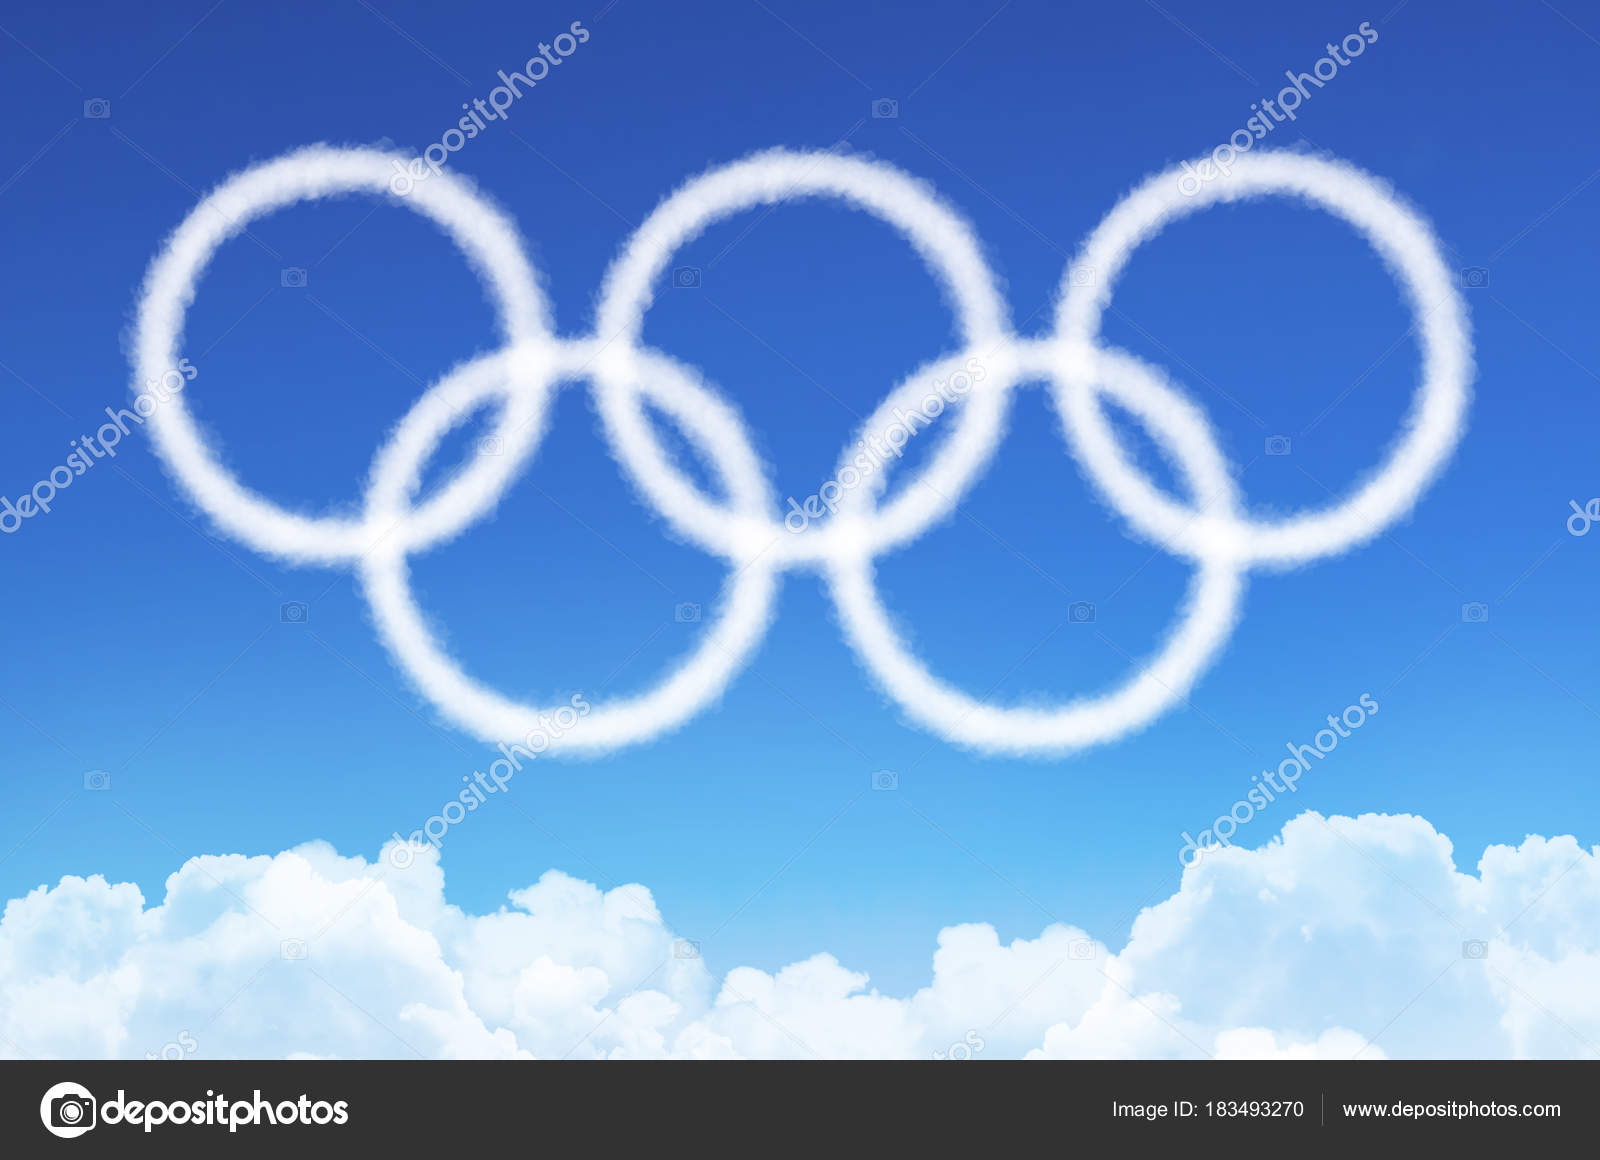 Olympic games symbol white rings from clouds of steam russia olympic games symbol white rings from clouds of steam russia moscow 09 february biocorpaavc Images